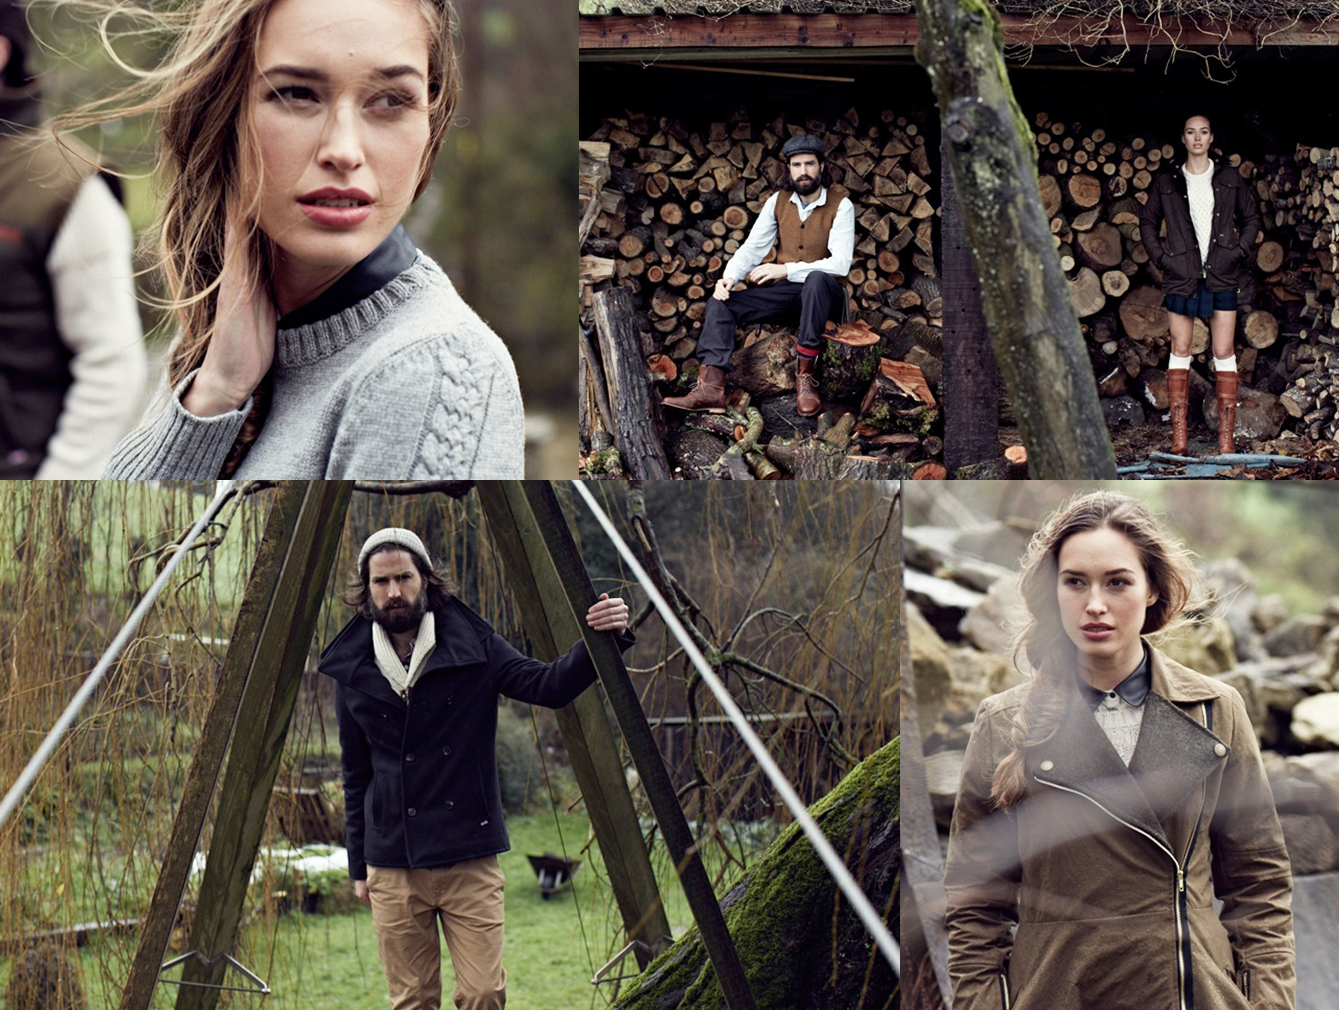 peregrine Autumn/Winter 2014 outdoor lookbook